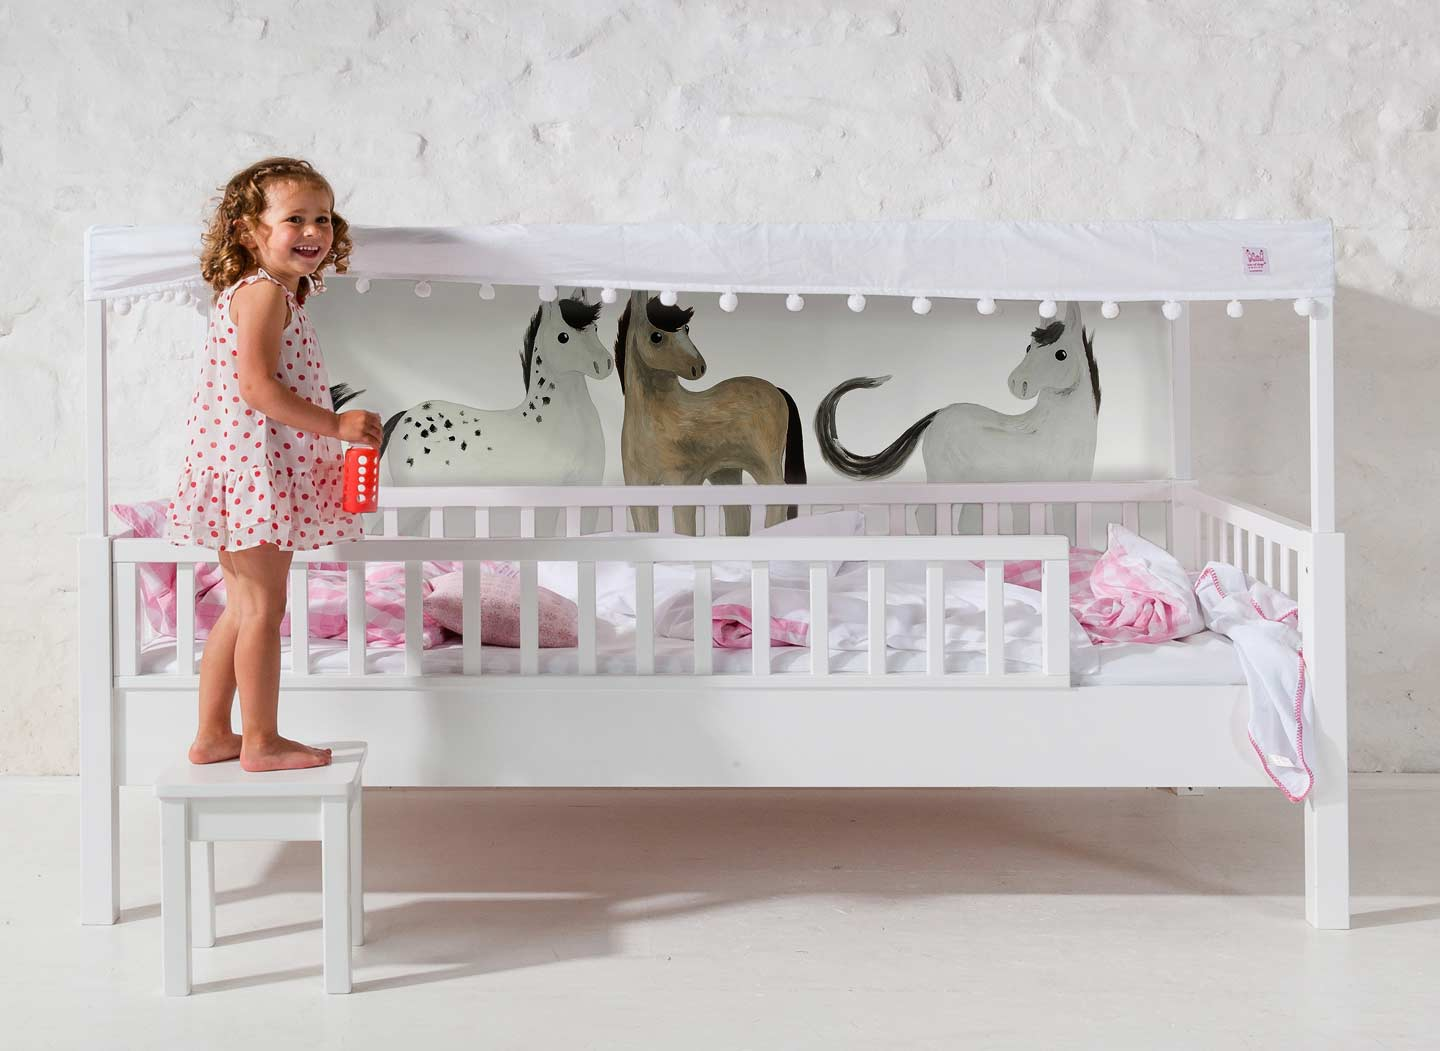 kinderbett ab 4 jahren flexa kinderbett play in grau online kaufen kidswoodlove kinderbett f r. Black Bedroom Furniture Sets. Home Design Ideas